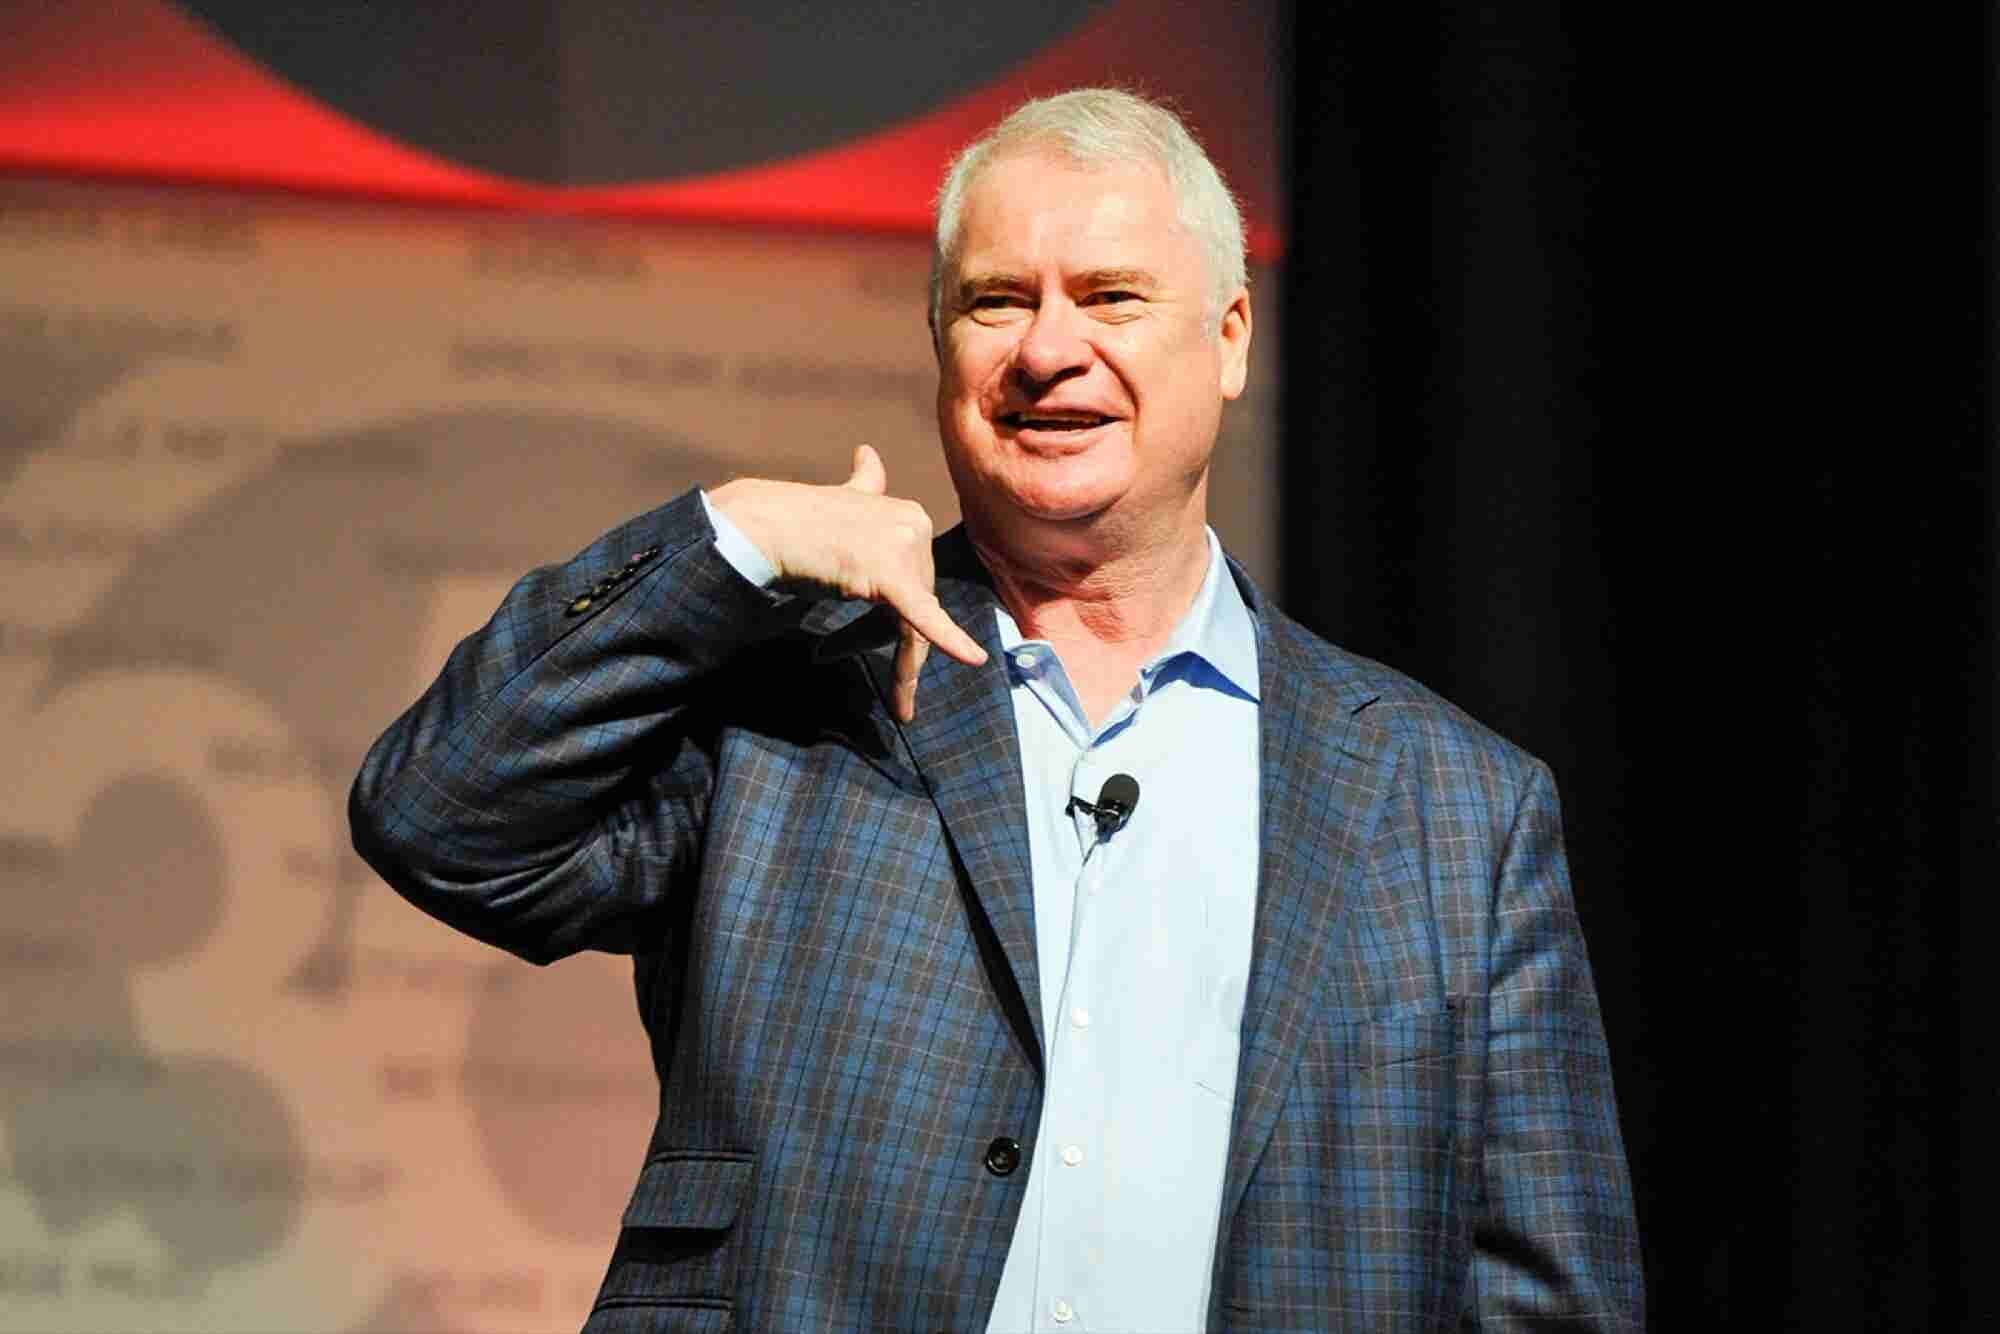 Les McKeown on How to Make Your Business a Predictable Success